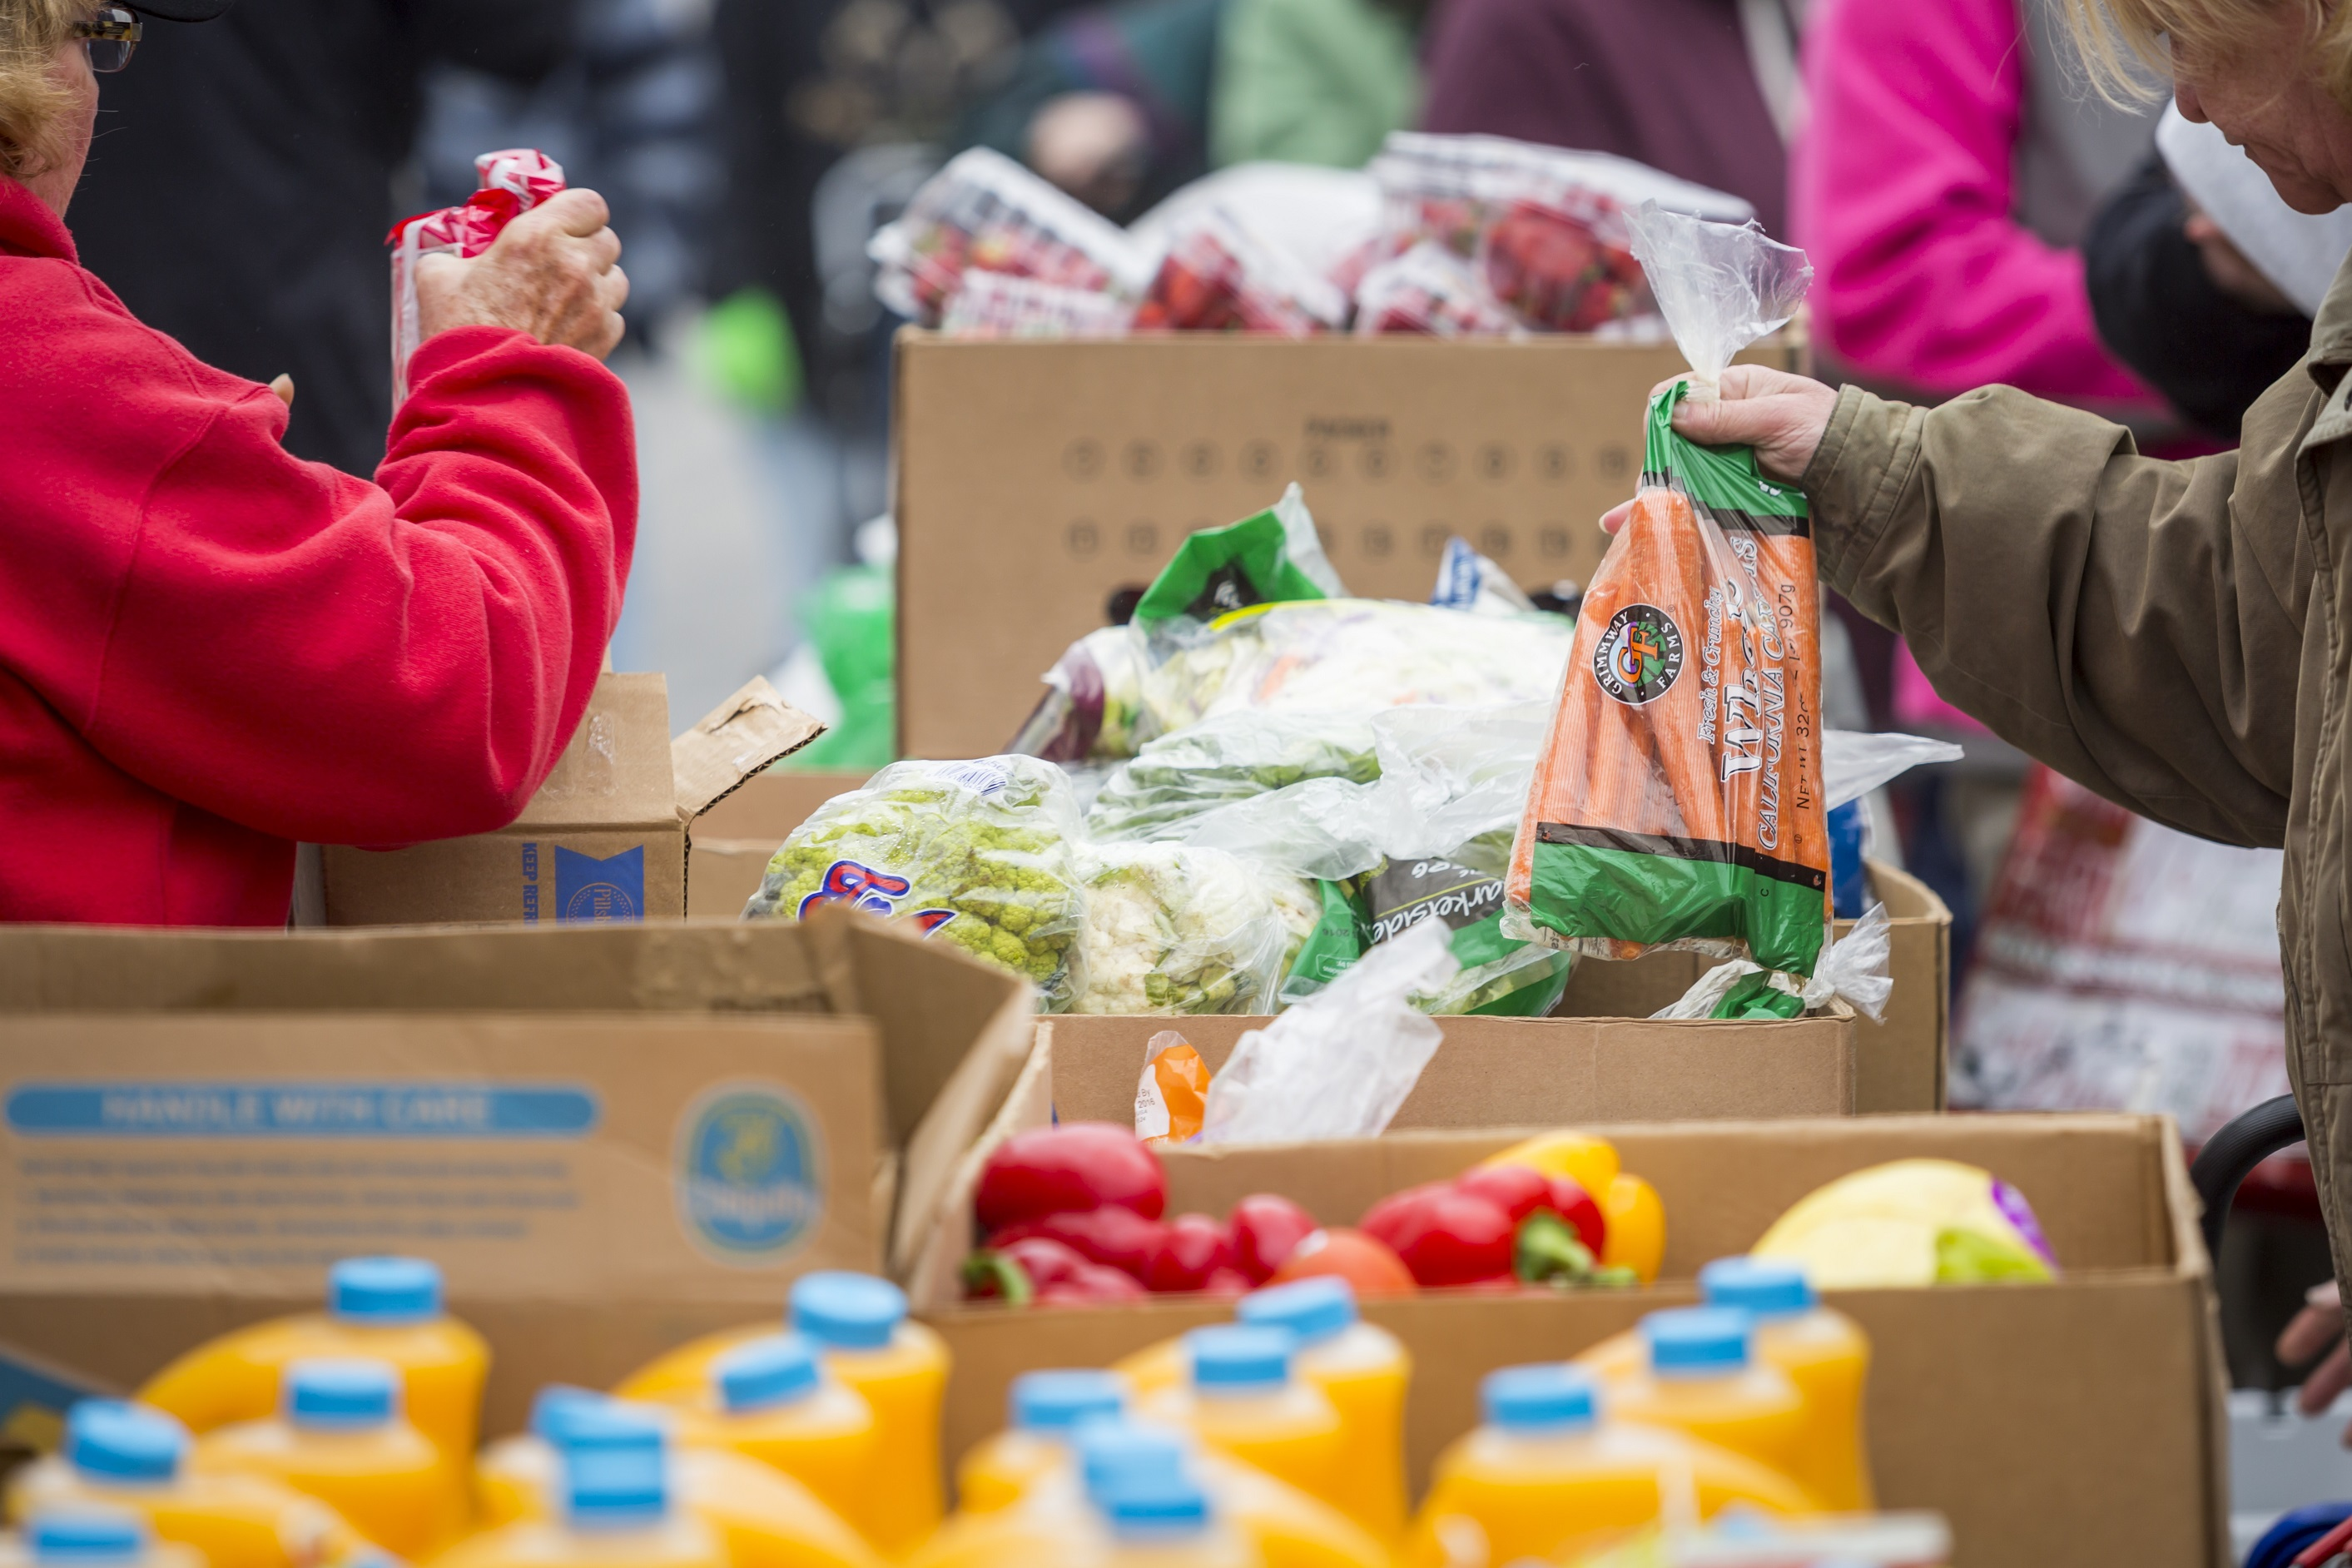 Clients receive food at a Mobile Pantry in April 2016. Credit: Feeding America West Michigan